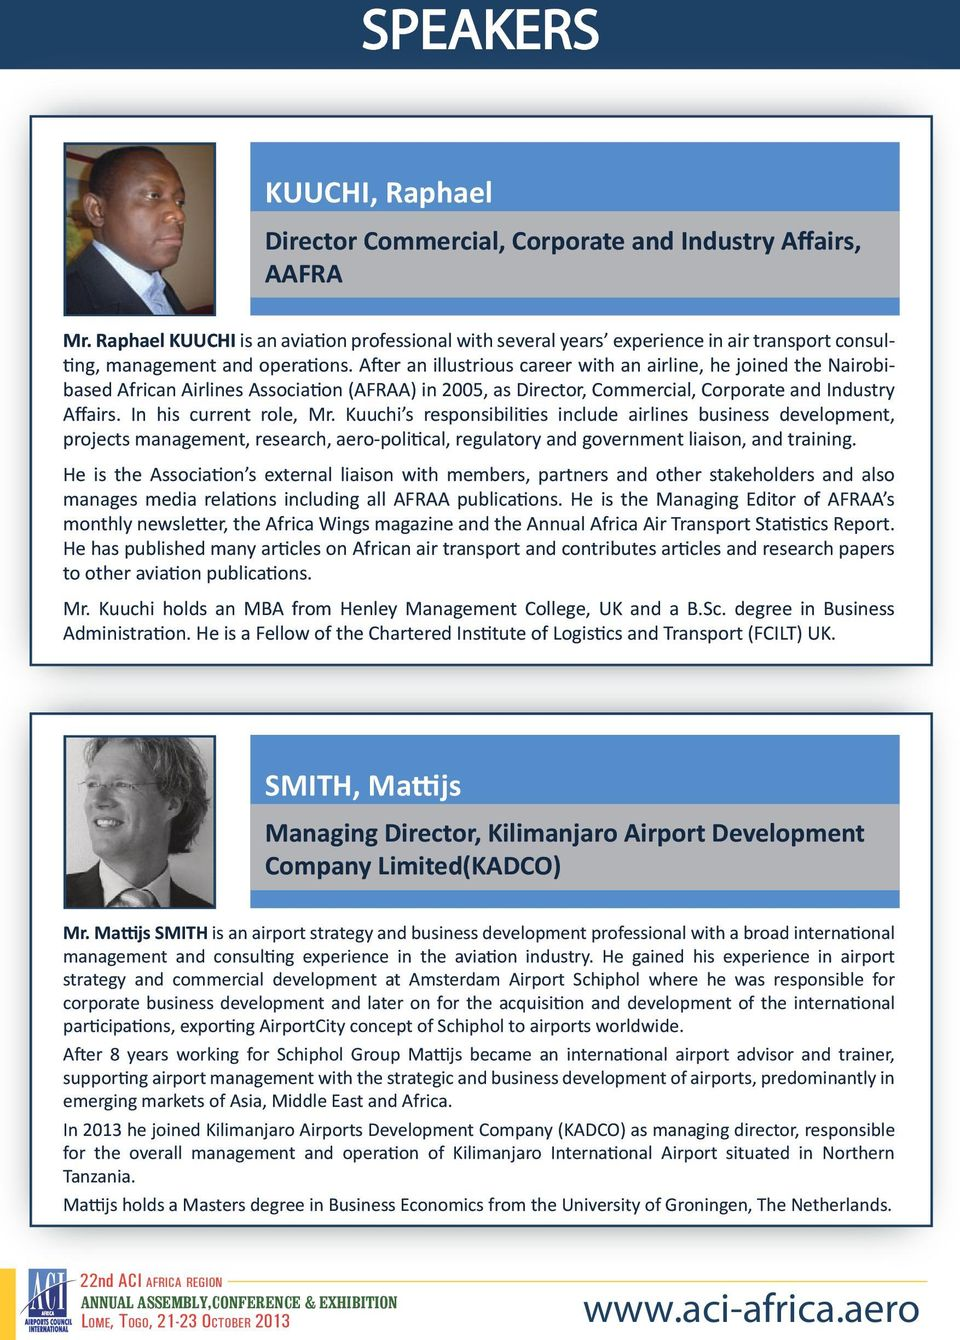 After an illustrious career with an airline, he joined the Nairobibased African Airlines Association (AFRAA) in 2005, as Director, Commercial, Corporate and Industry Affairs. In his current role, Mr.